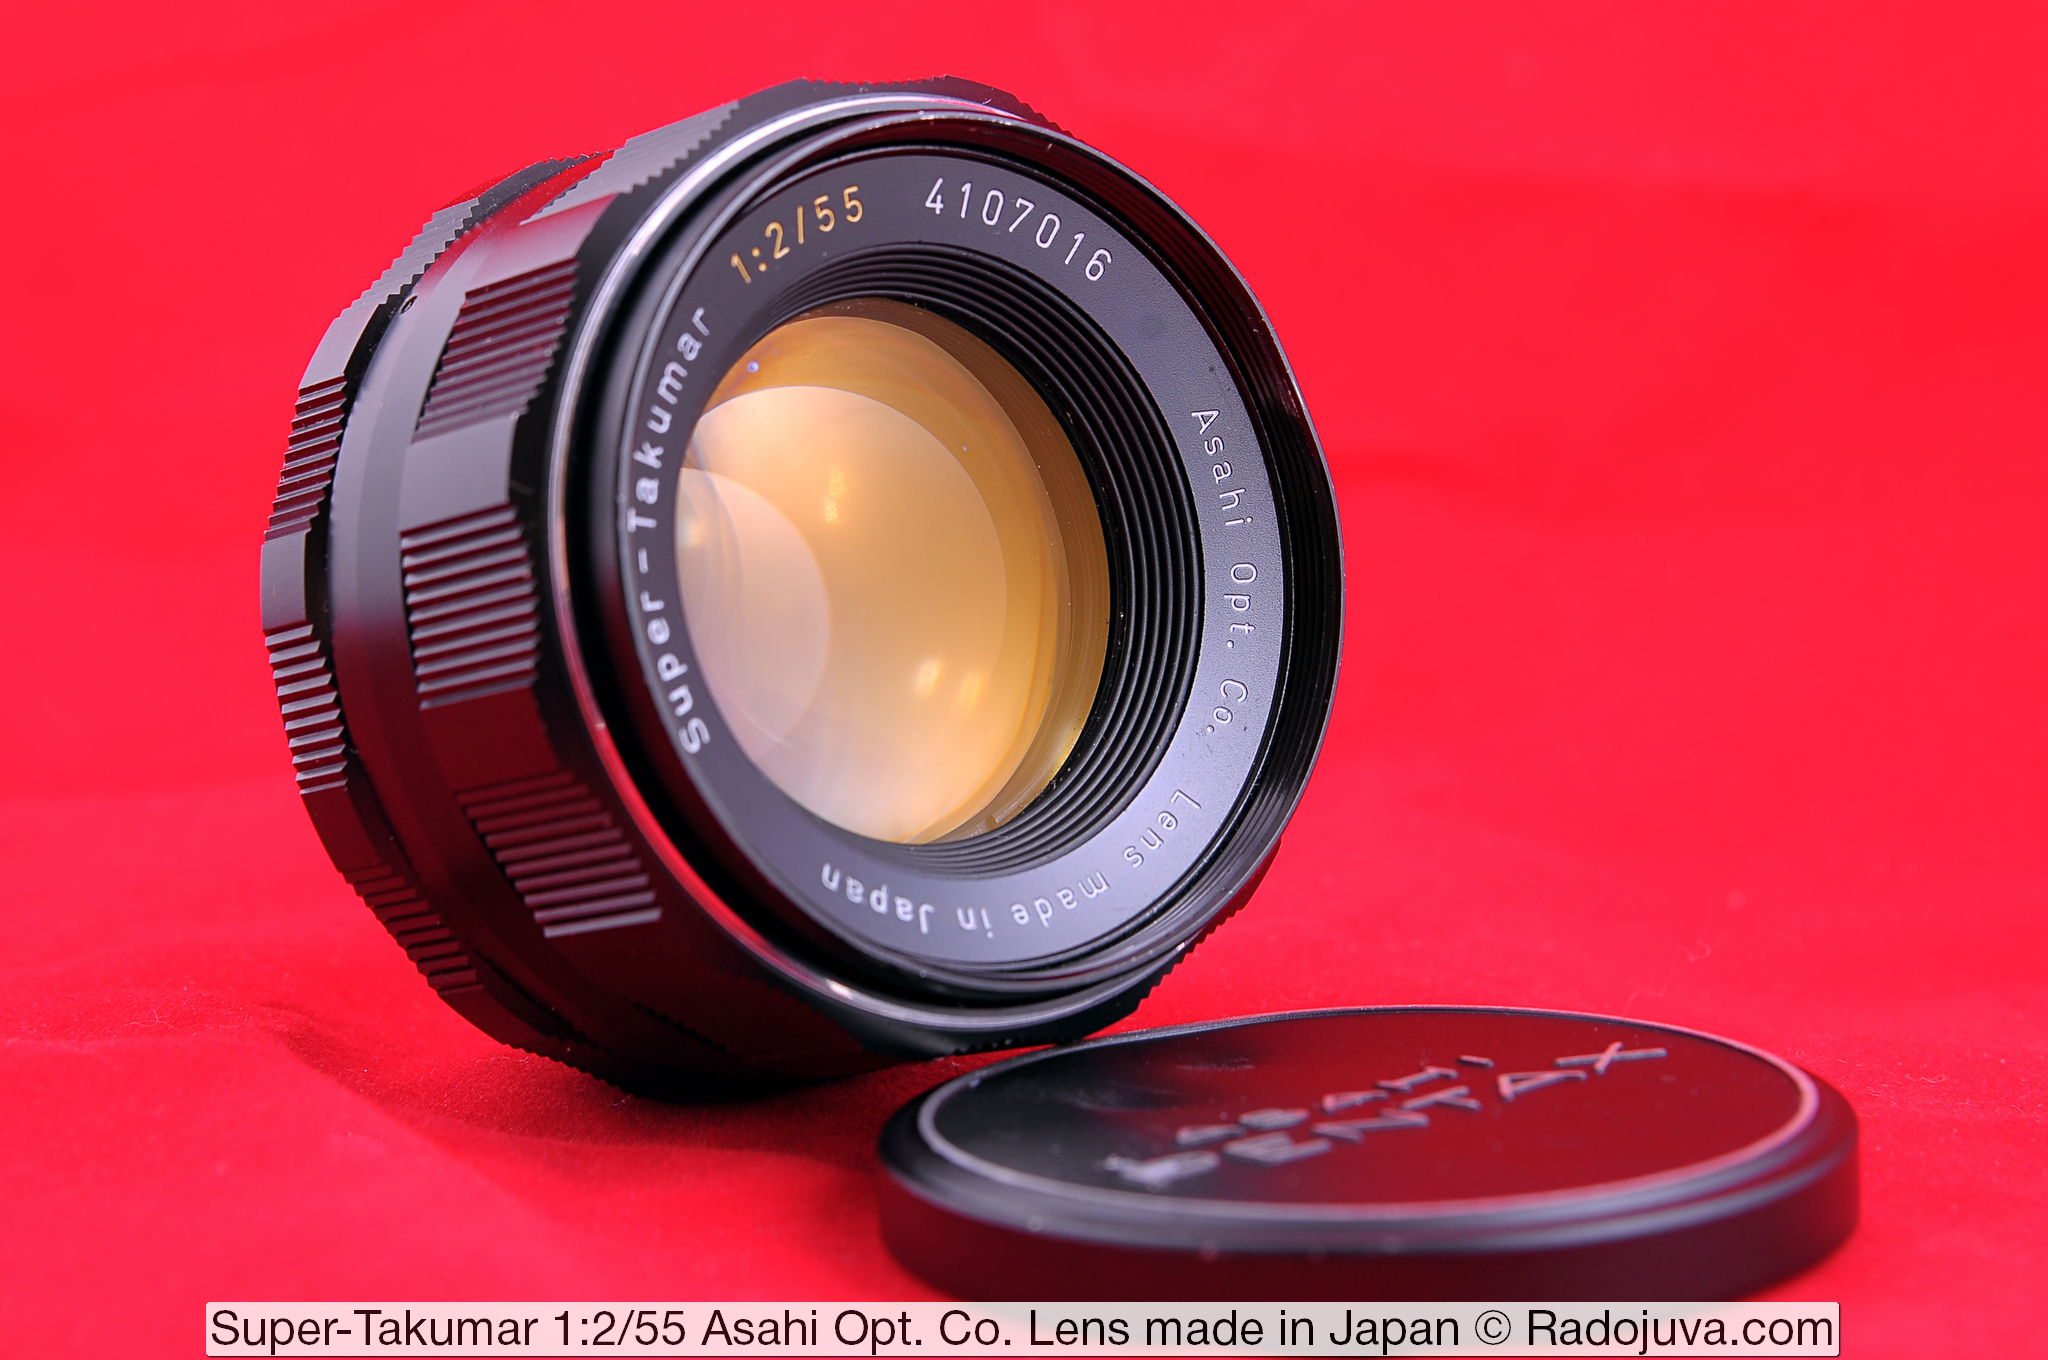 Объектив Super-Takumar 1:2/55 Asahi Opt. Co. Lens made in Japan